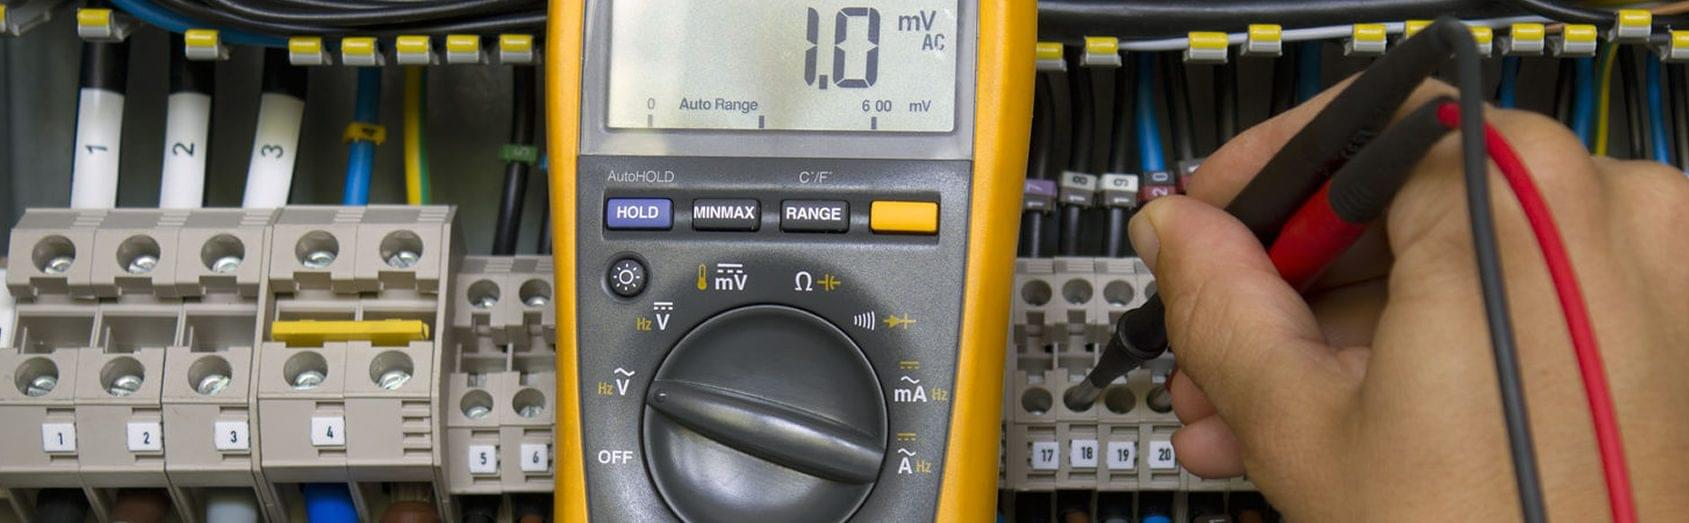 Electrical voltage measuring